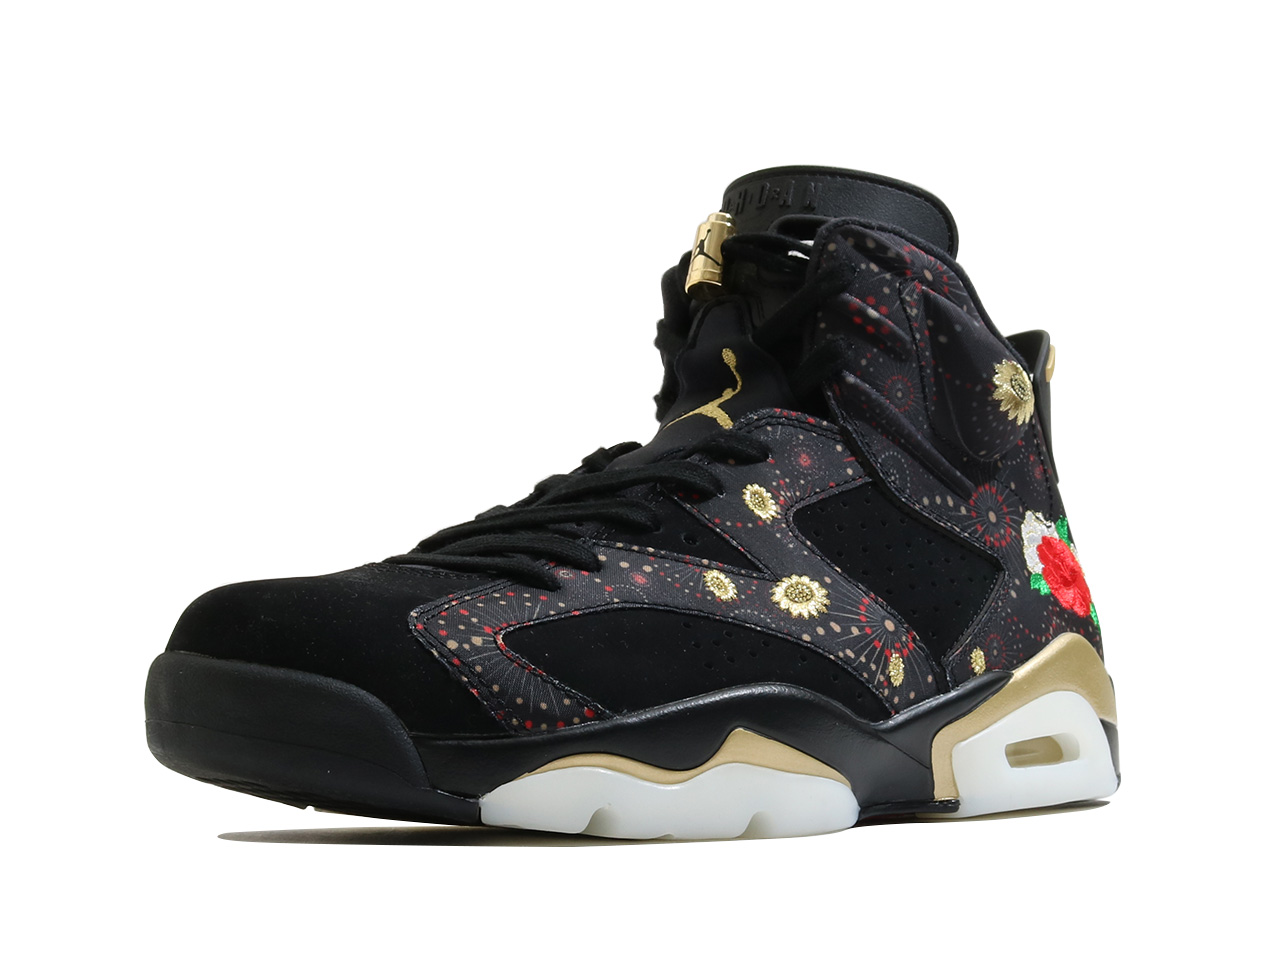 nike_air_jordan_6_retro_cny_aa2492-021